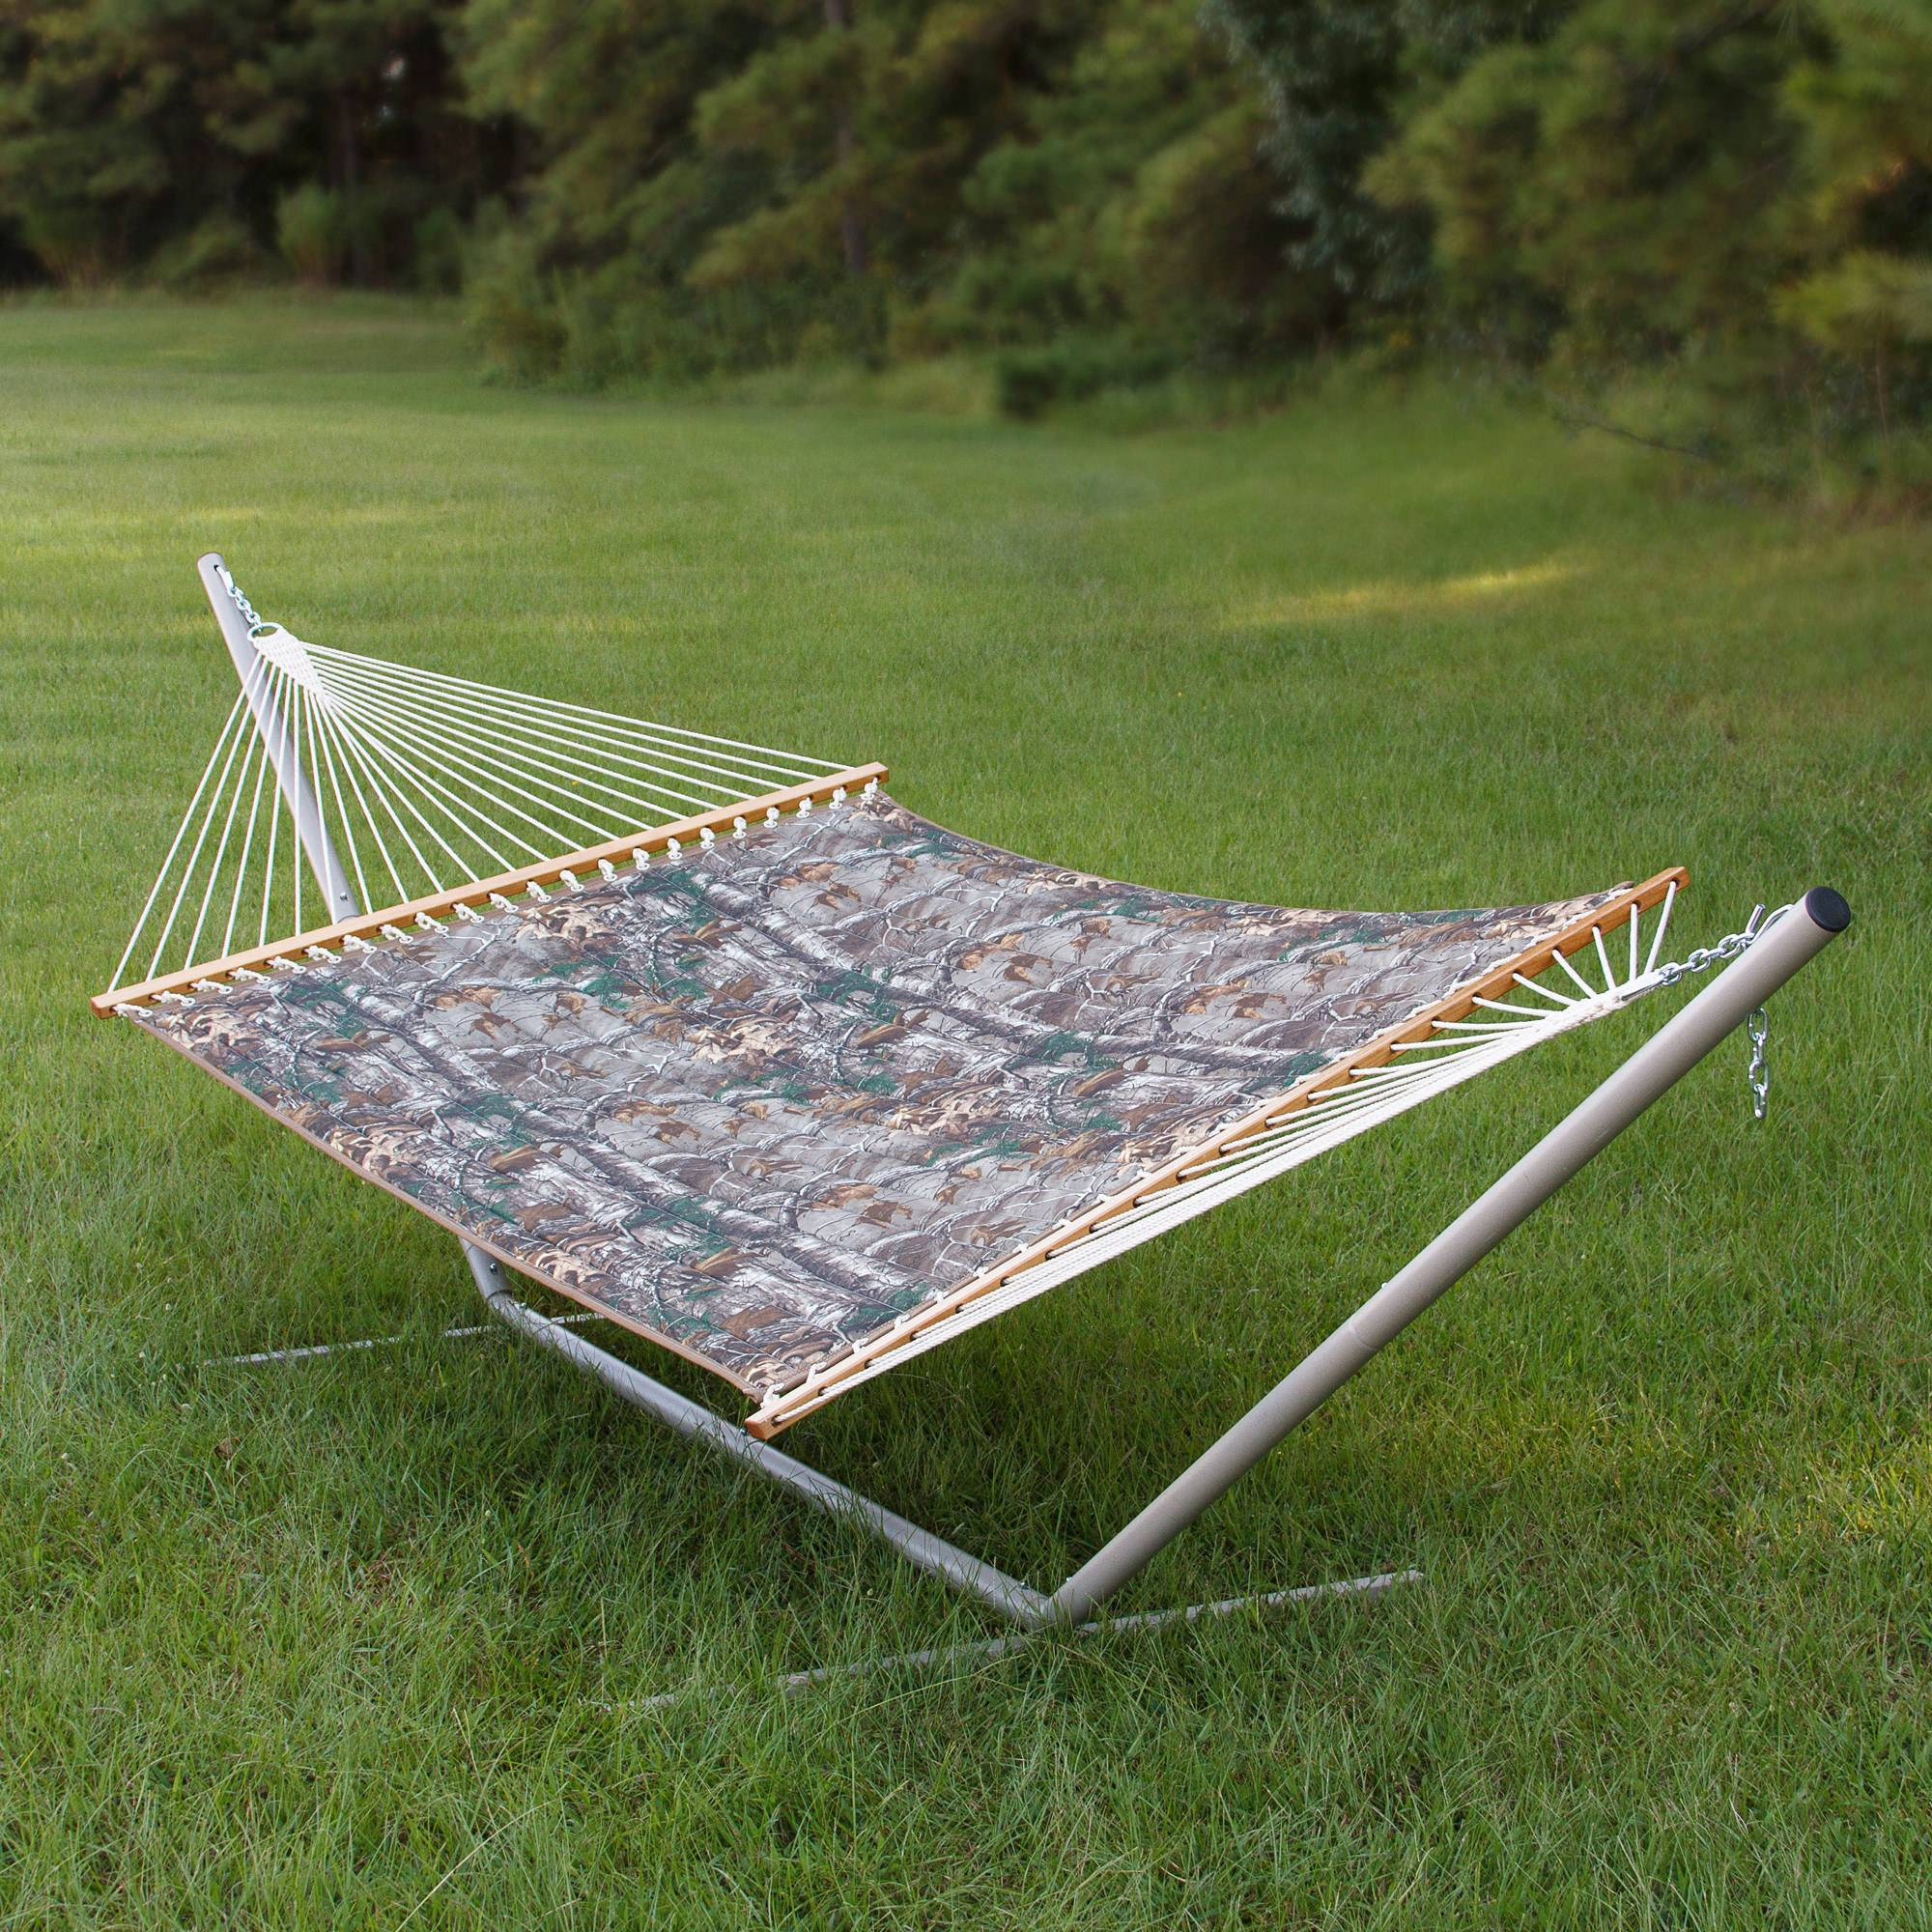 quilted hammock   realtree camo castaway realtree camo single layer hammock   dfohome  rh   dfohome